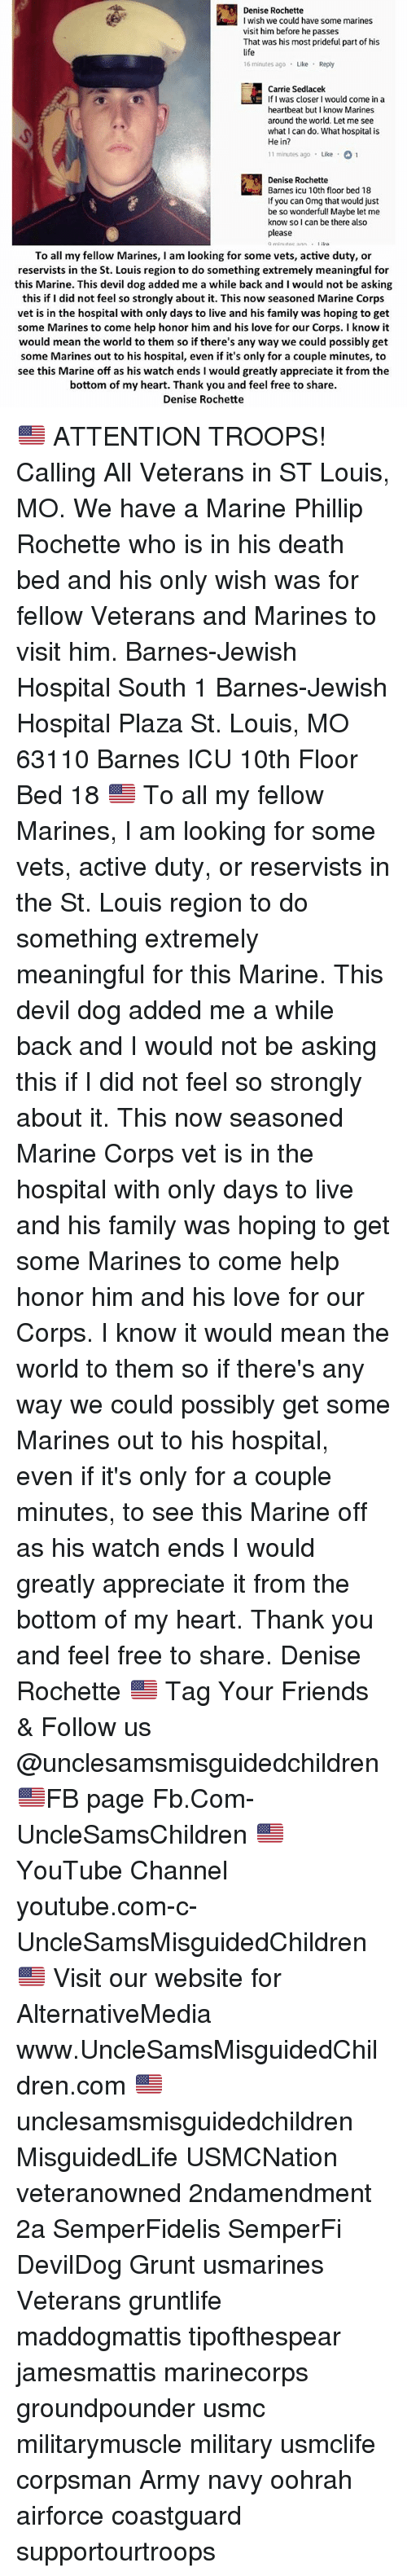 Feeling Free: Denise Rochette  I wish we could have some marines  visit him before he passes  That was his most prideful part of his  life  16 minutes ago Like Reply  Carrie Sedlacek  If I was closer I would come in a  heartbeat but I know Marines  around the world. Let me see  what I can do. What hospital is  He in?  11 minutes ago Like 1  Denise Rochette  Barnes icu 10th floor bed 18  If you can Omg that would just  be so wonderful! Maybe let me  know so l can be there also  please  To all my fellow Marines, I am looking for some vets, active duty, or  reservists in the St. Louis region to do something extremely meaningful for  this Marine. This devil dog added me a while back and I would not be asking  this if I did not feel so strongly about it. This now seasoned Marine Corps  vet is in the hospital with only days to live and his family was hoping to get  some Marines to come help honor him and his love for our Corps. I know it  would mean the world to them so if there's any way we could possibly get  some Marines out to his hospital, even if it's only for a couple minutes, to  see this Marine off as his watch ends I would greatly appreciate it from the  bottom of my heart. Thank you and feel free to share.  Denise Rochette 🇺🇸 ATTENTION TROOPS! Calling All Veterans in ST Louis, MO. We have a Marine Phillip Rochette who is in his death bed and his only wish was for fellow Veterans and Marines to visit him. Barnes-Jewish Hospital South 1 Barnes-Jewish Hospital Plaza St. Louis, MO 63110 Barnes ICU 10th Floor Bed 18 🇺🇸 To all my fellow Marines, I am looking for some vets, active duty, or reservists in the St. Louis region to do something extremely meaningful for this Marine. This devil dog added me a while back and I would not be asking this if I did not feel so strongly about it. This now seasoned Marine Corps vet is in the hospital with only days to live and his family was hoping to get some Marines to come help honor him and his love for our Corps. I know it woul